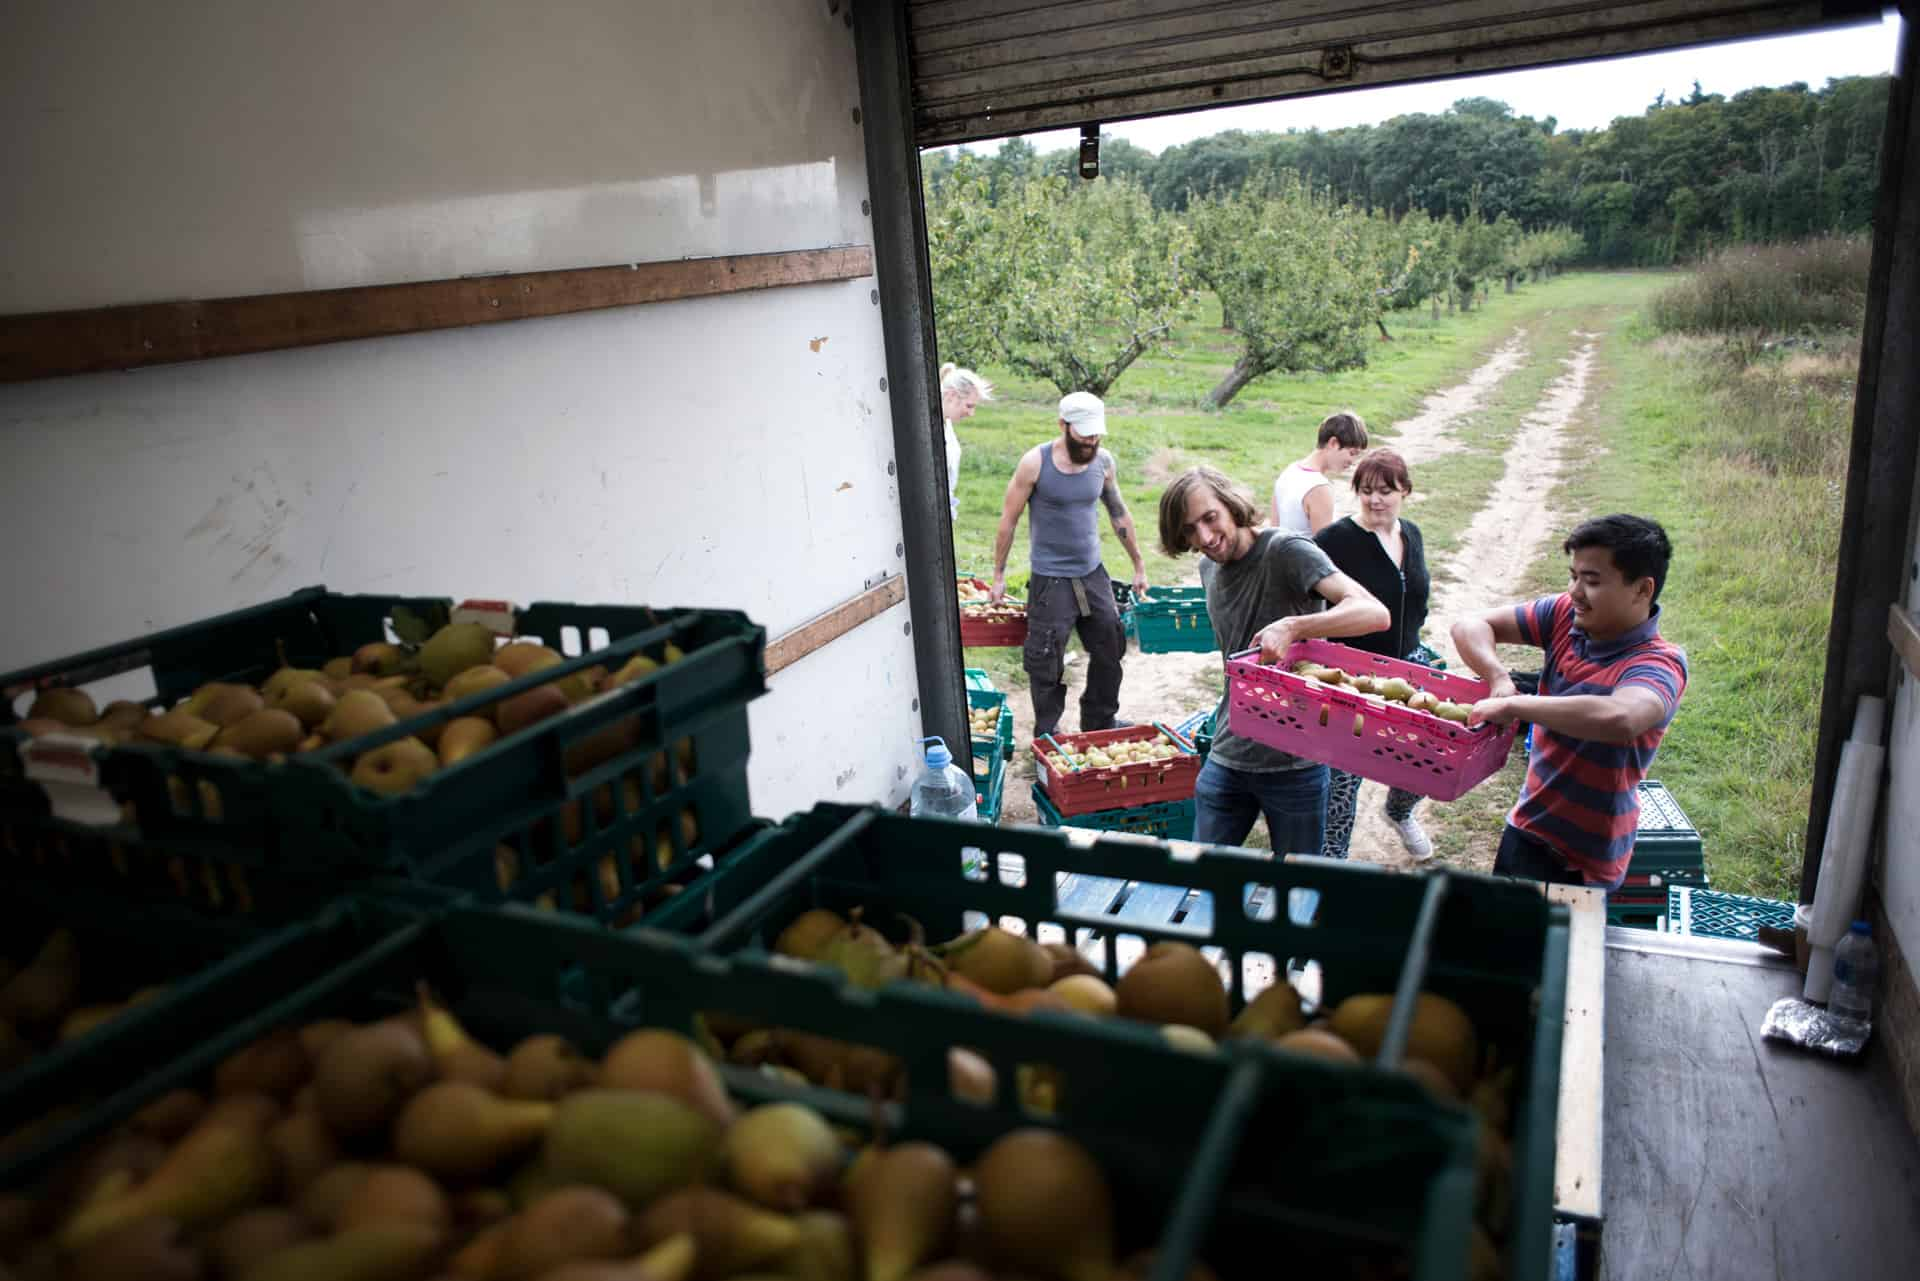 Gleaning pears to reduce farm-level food waste - Documentary Photography by Chris King for Open Eye Media